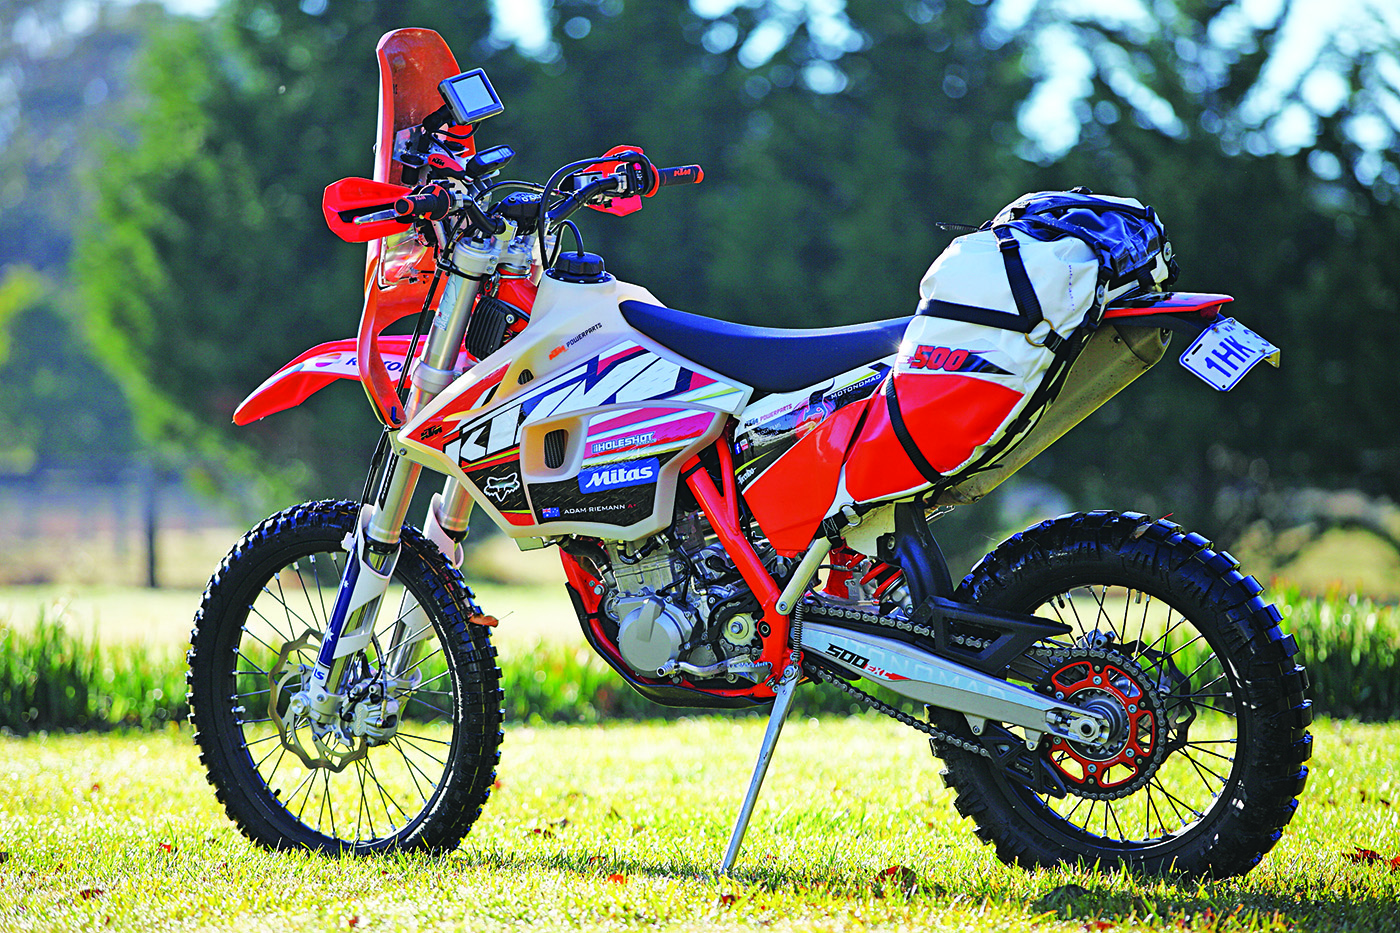 Ktm 500 Exc Service Manual Wiring Diagram Libraries Kenwood Kdc Hd942u Libraryktm